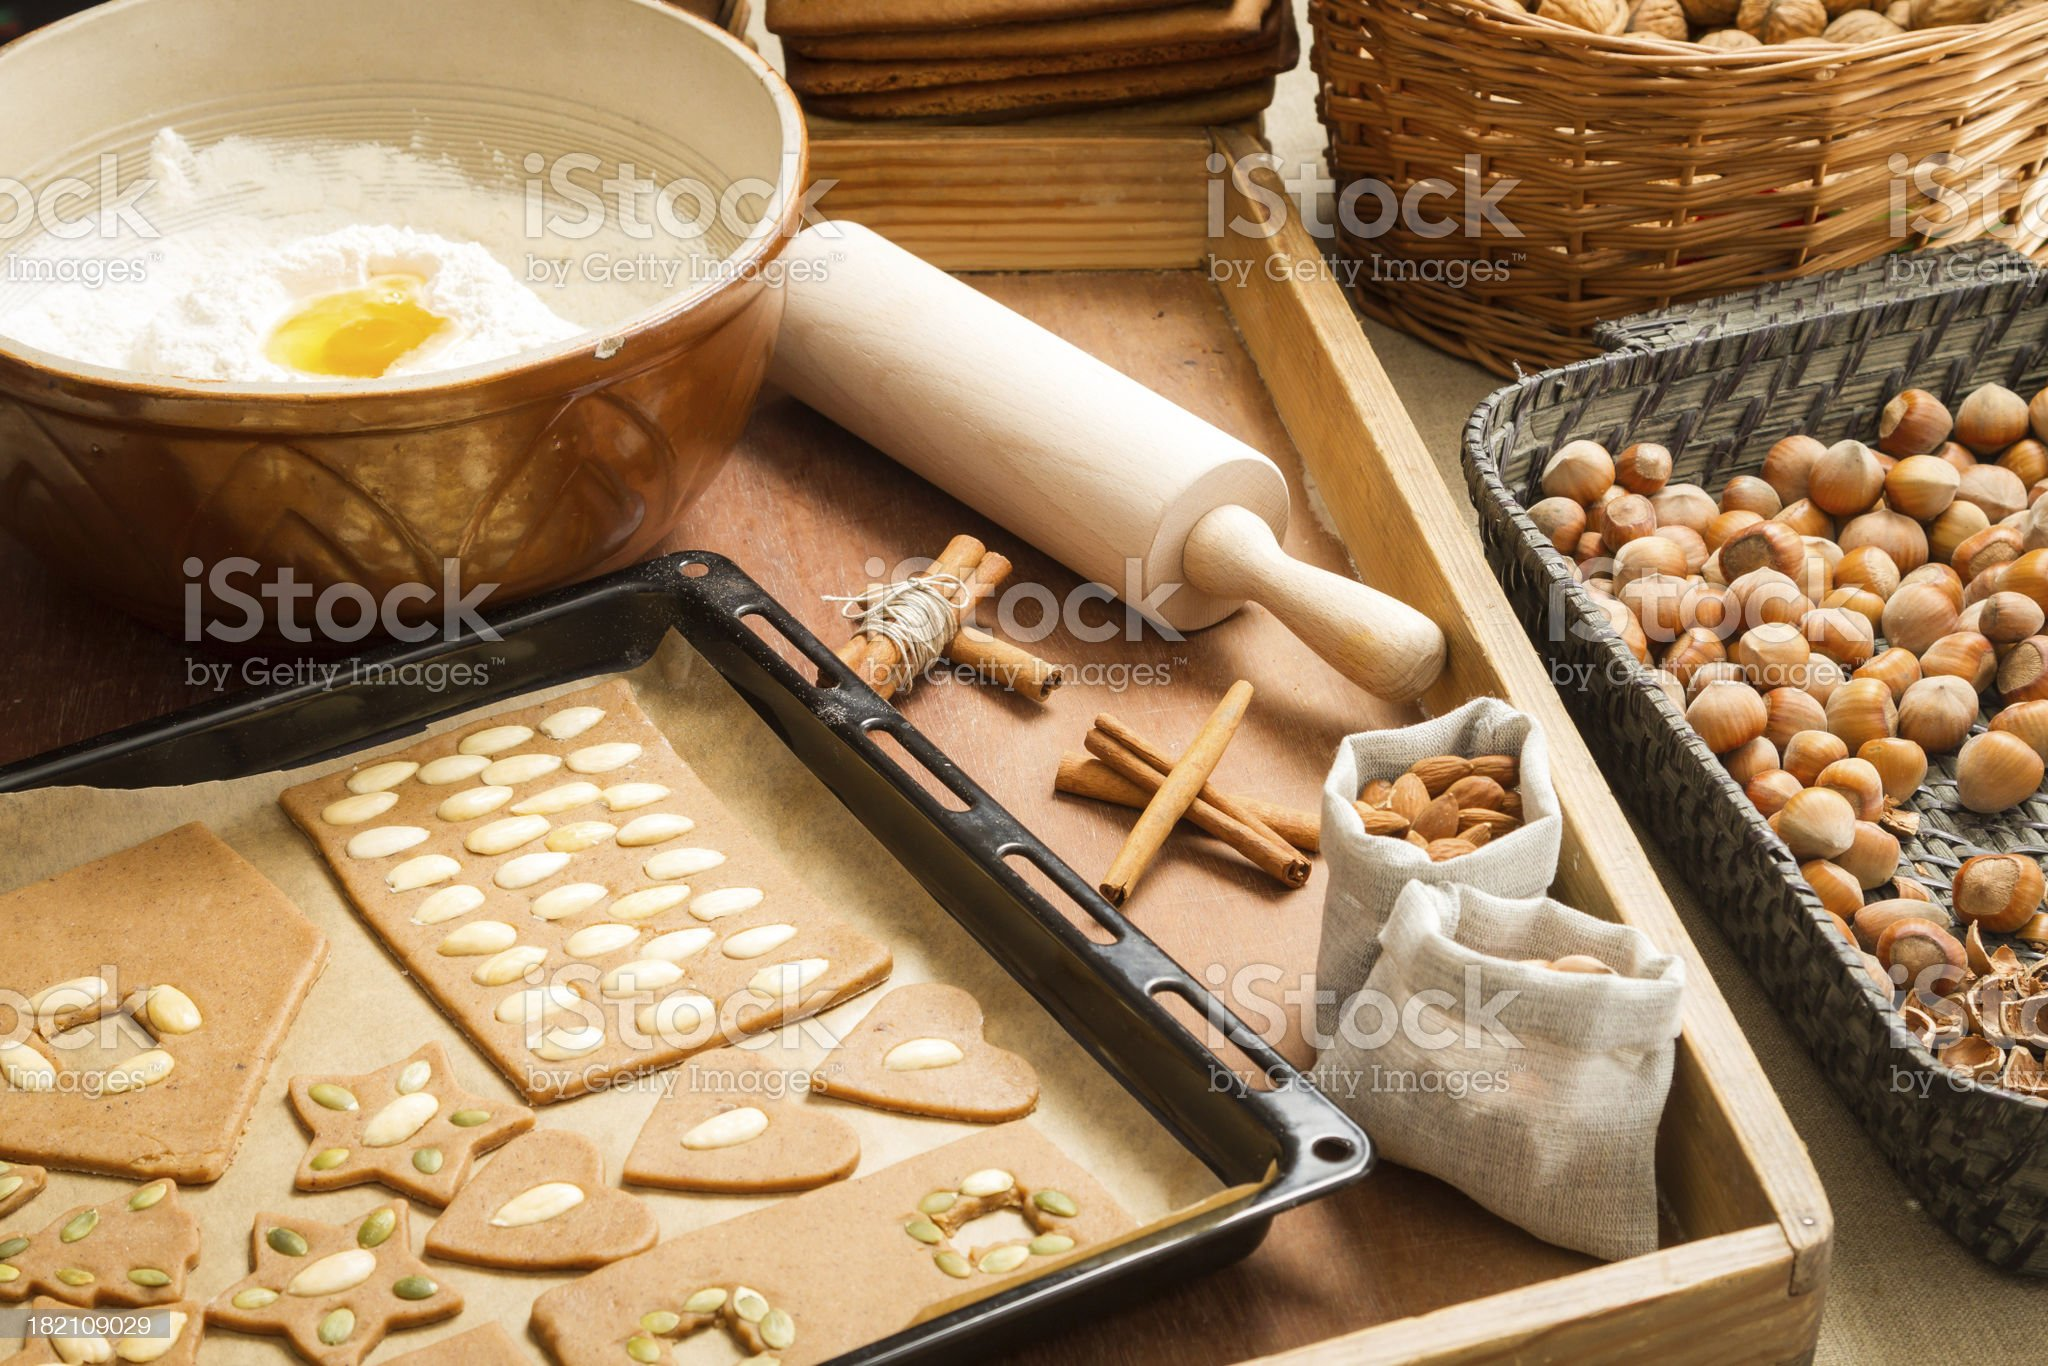 Decorating gingerbread cookies nuts just before baking royalty-free stock photo